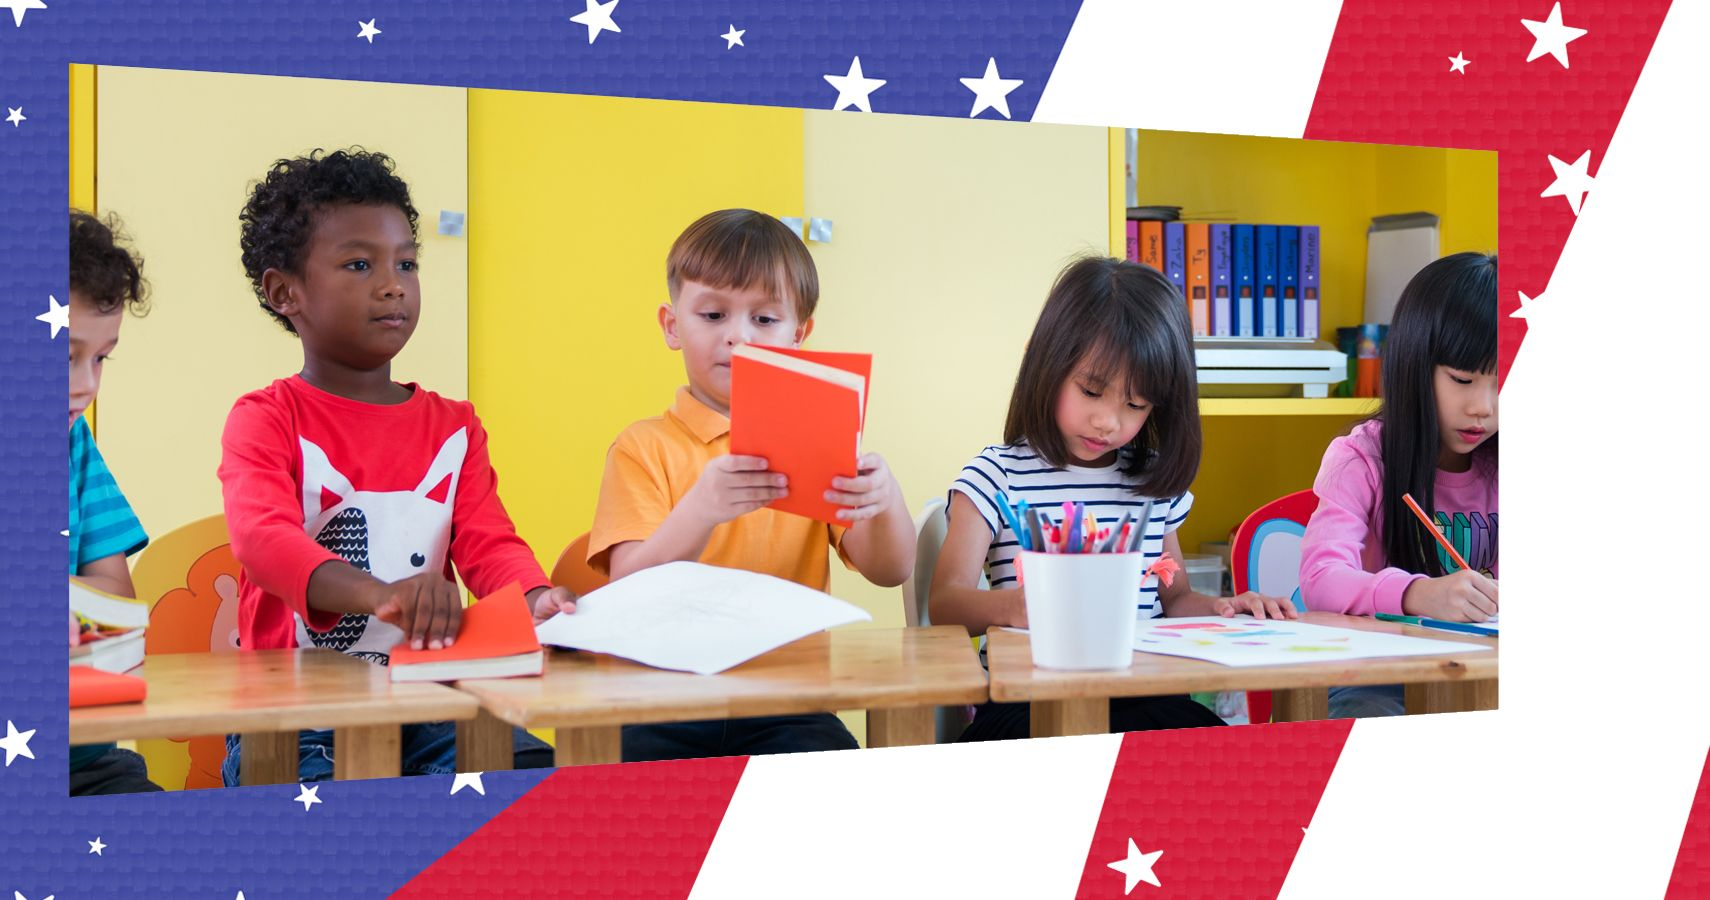 Free Childcare On Election Day For Parents | Moms.com